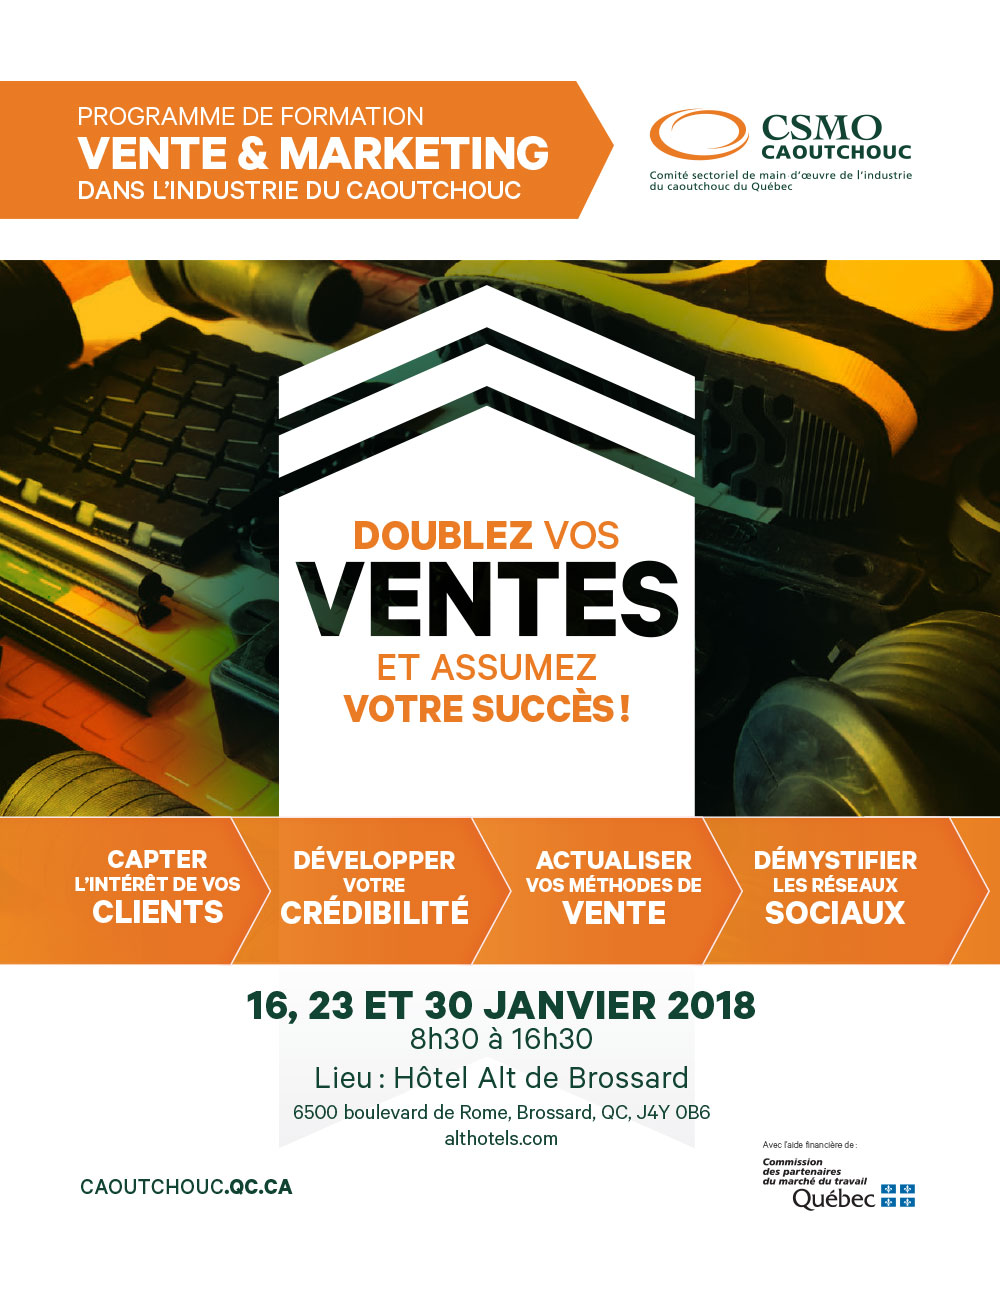 Programme de formation VENTE et MARKETING